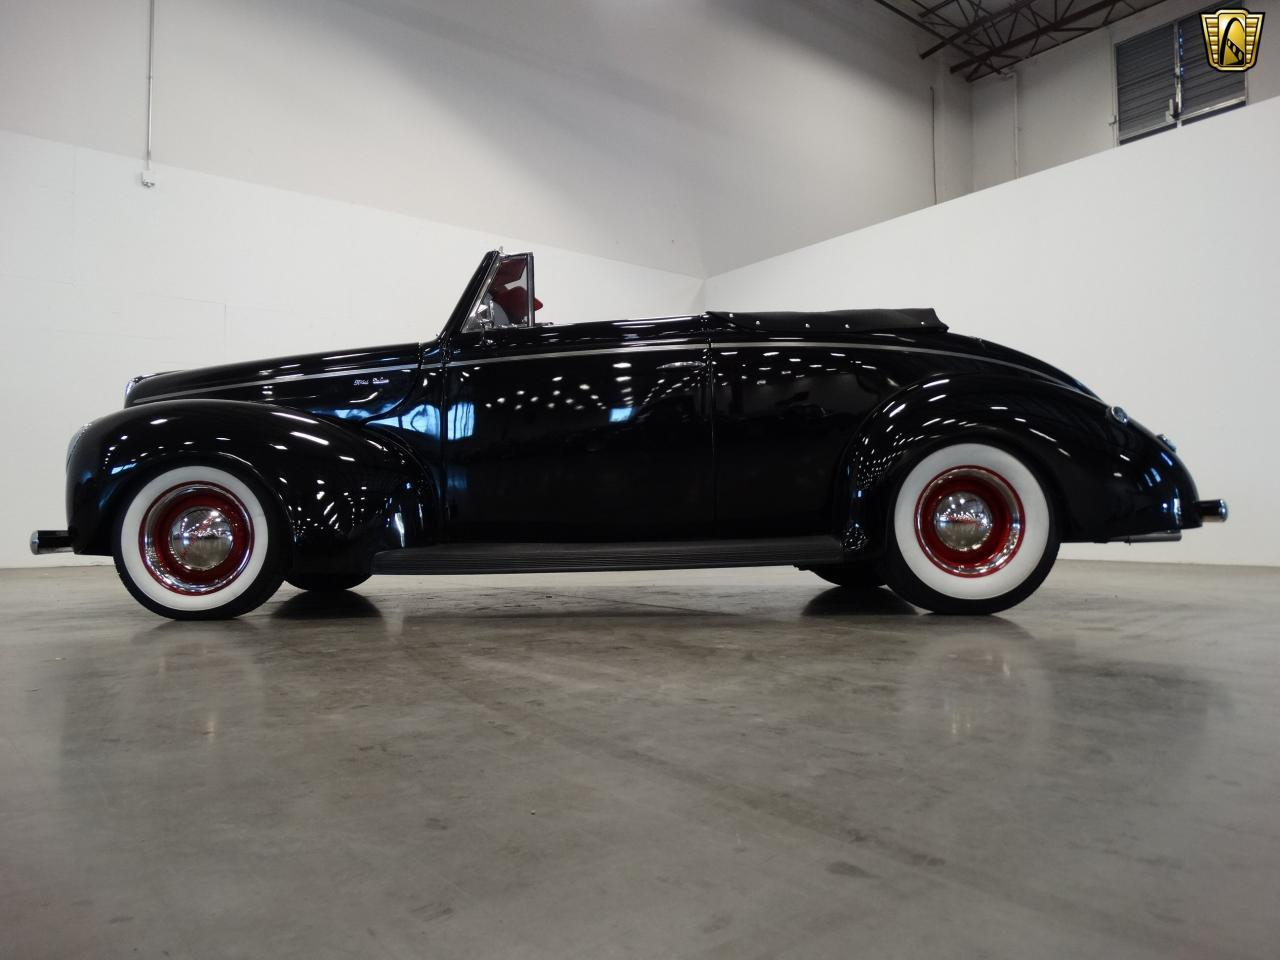 Large Picture of Classic 1940 Ford Sedan - $58,000.00 - KDR7